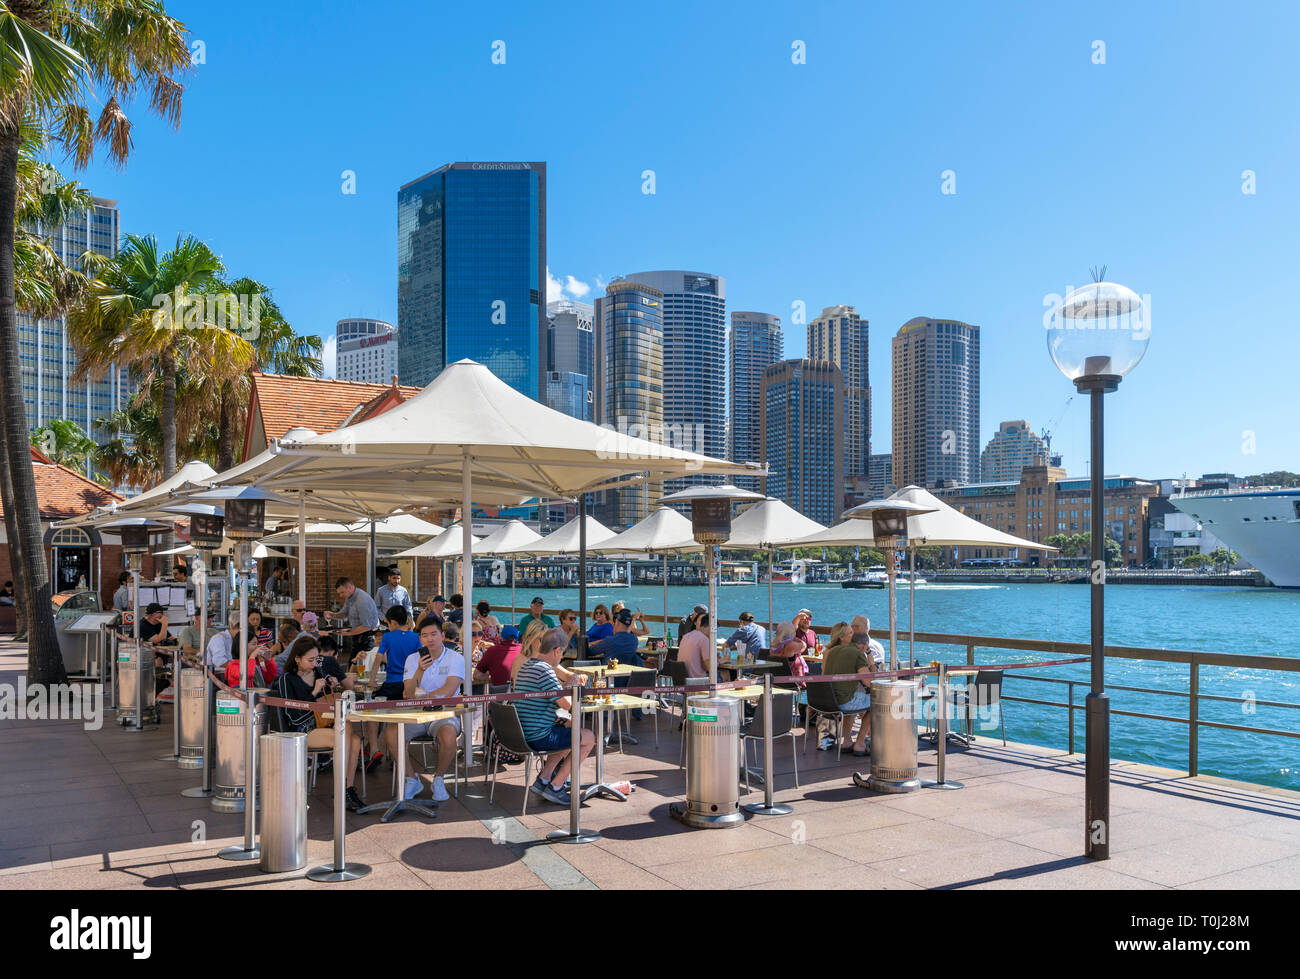 Sidewalk cafe on Circular Quay with the skyline of Sydney Central Business District behind, Sydney, Australia - Stock Image